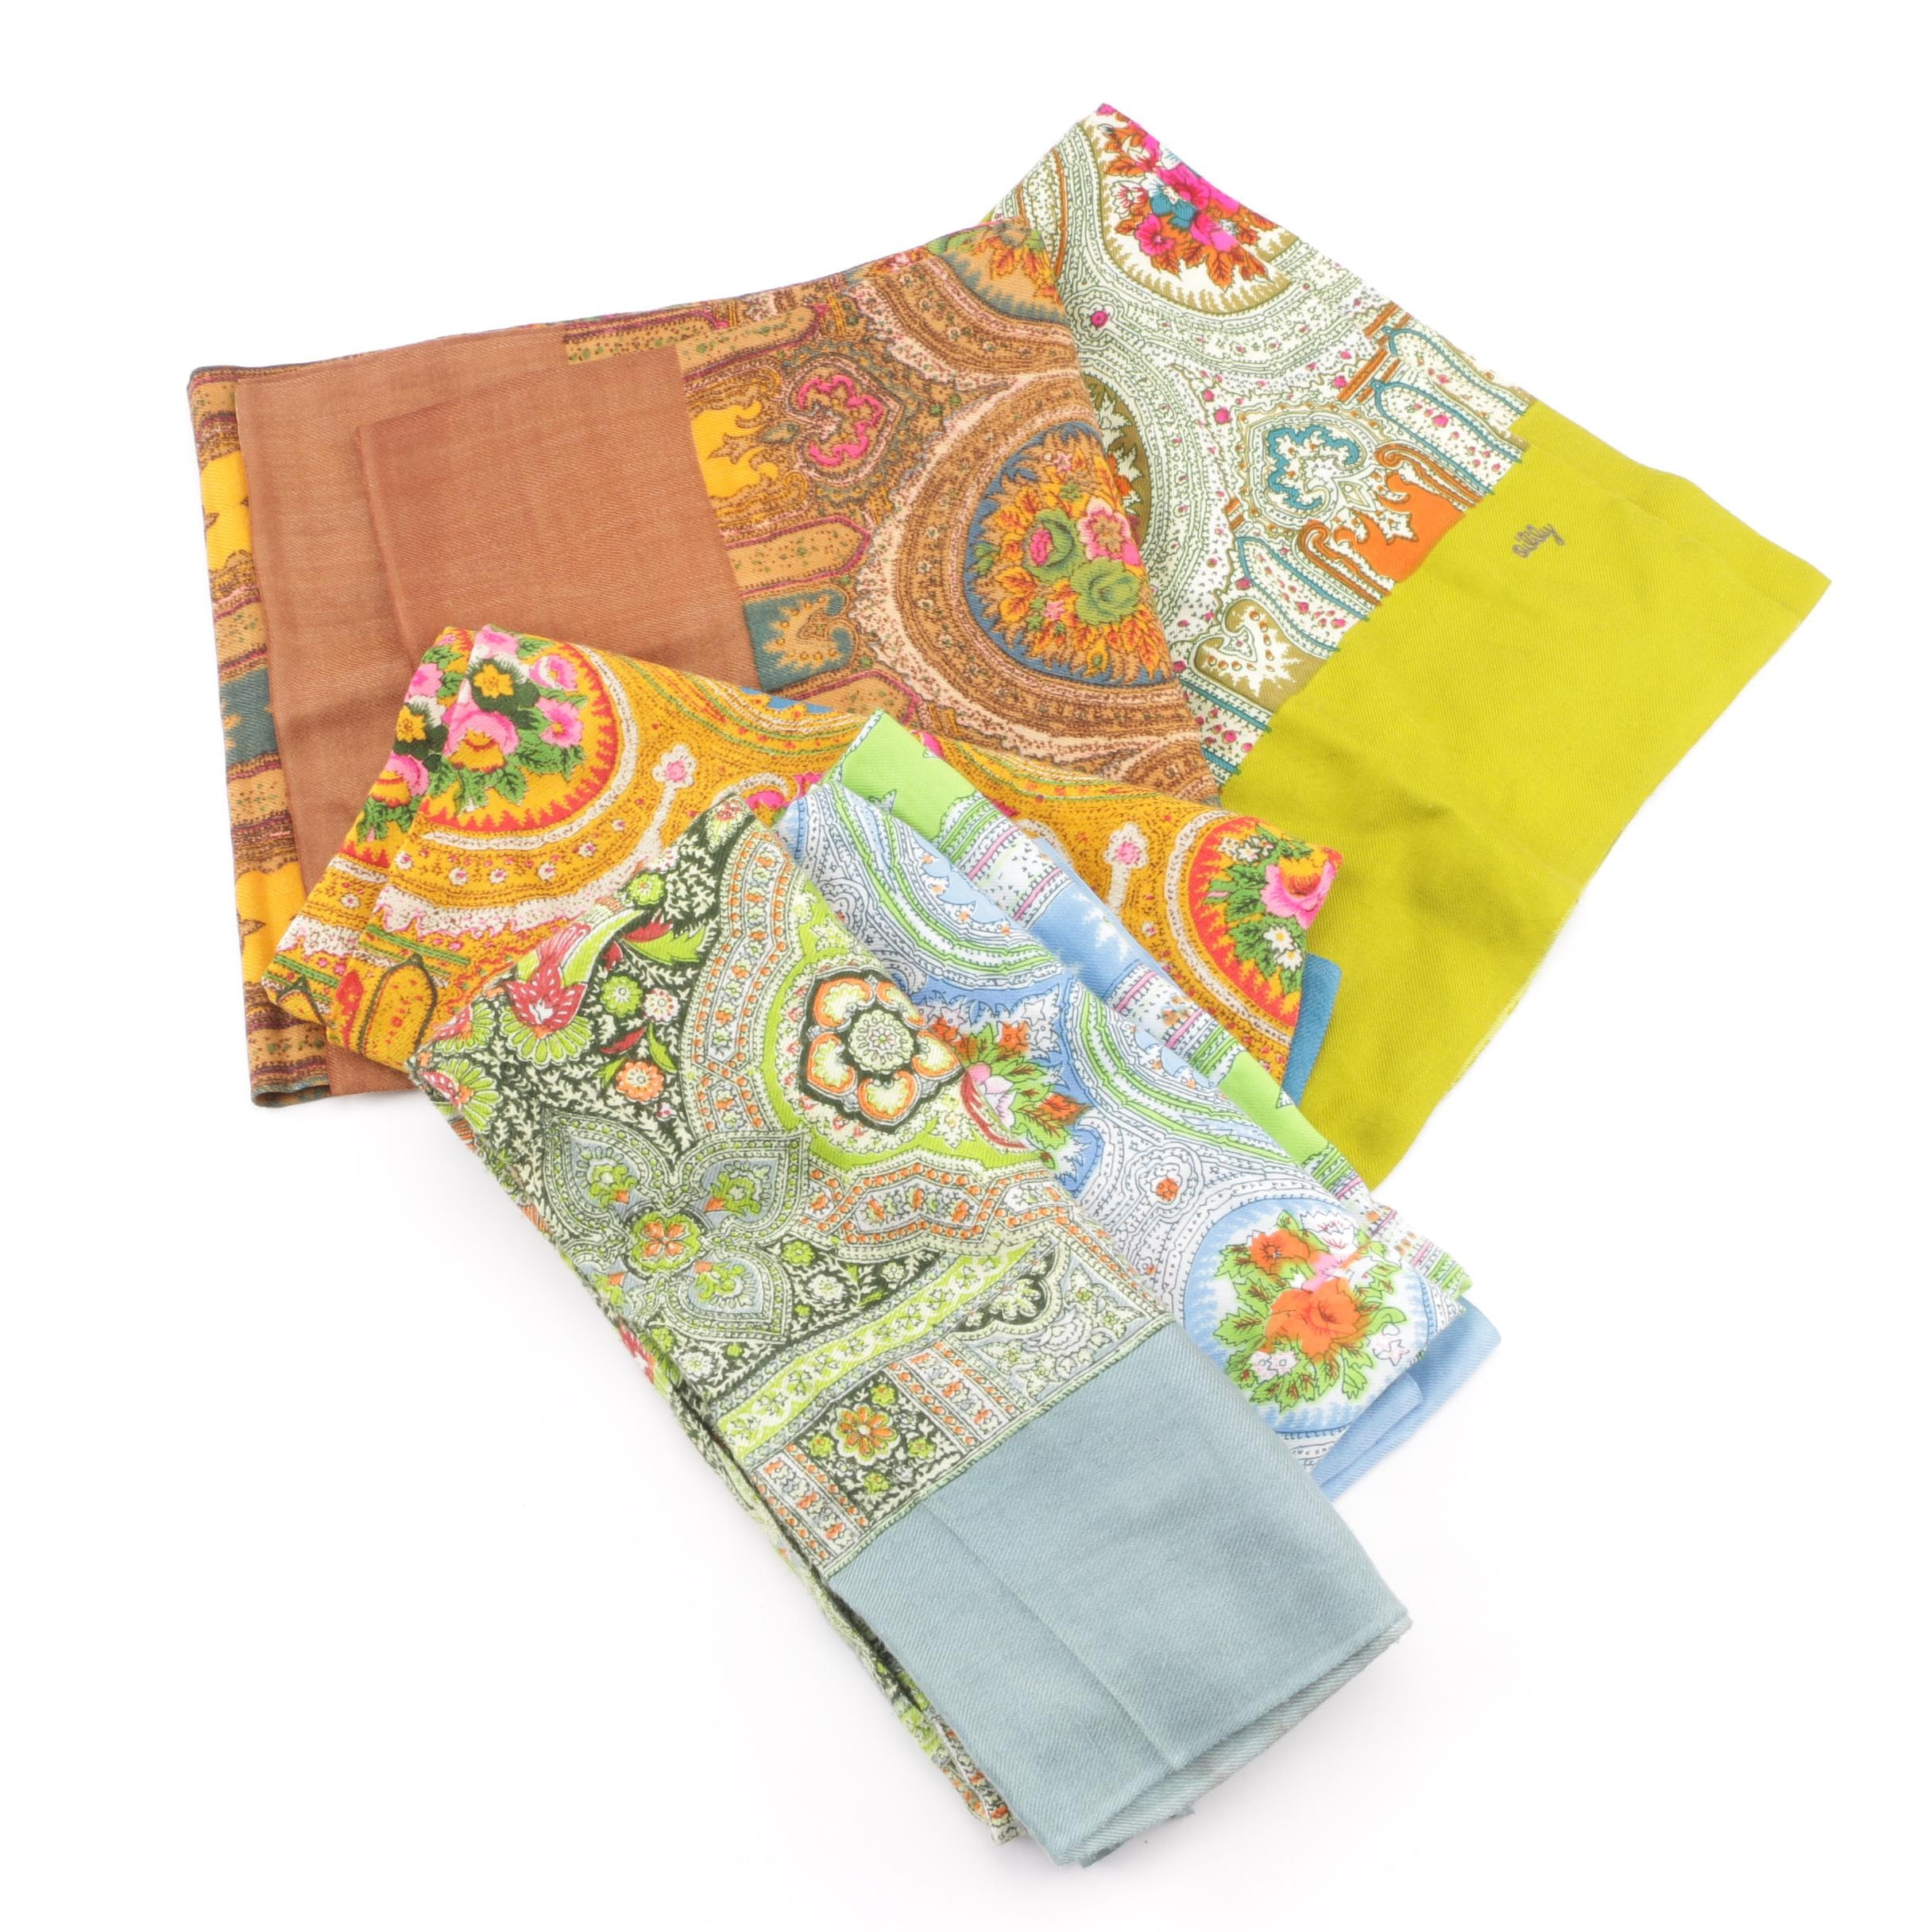 Oilily Wool Blend Paisley and Floral Print Tube Scarves